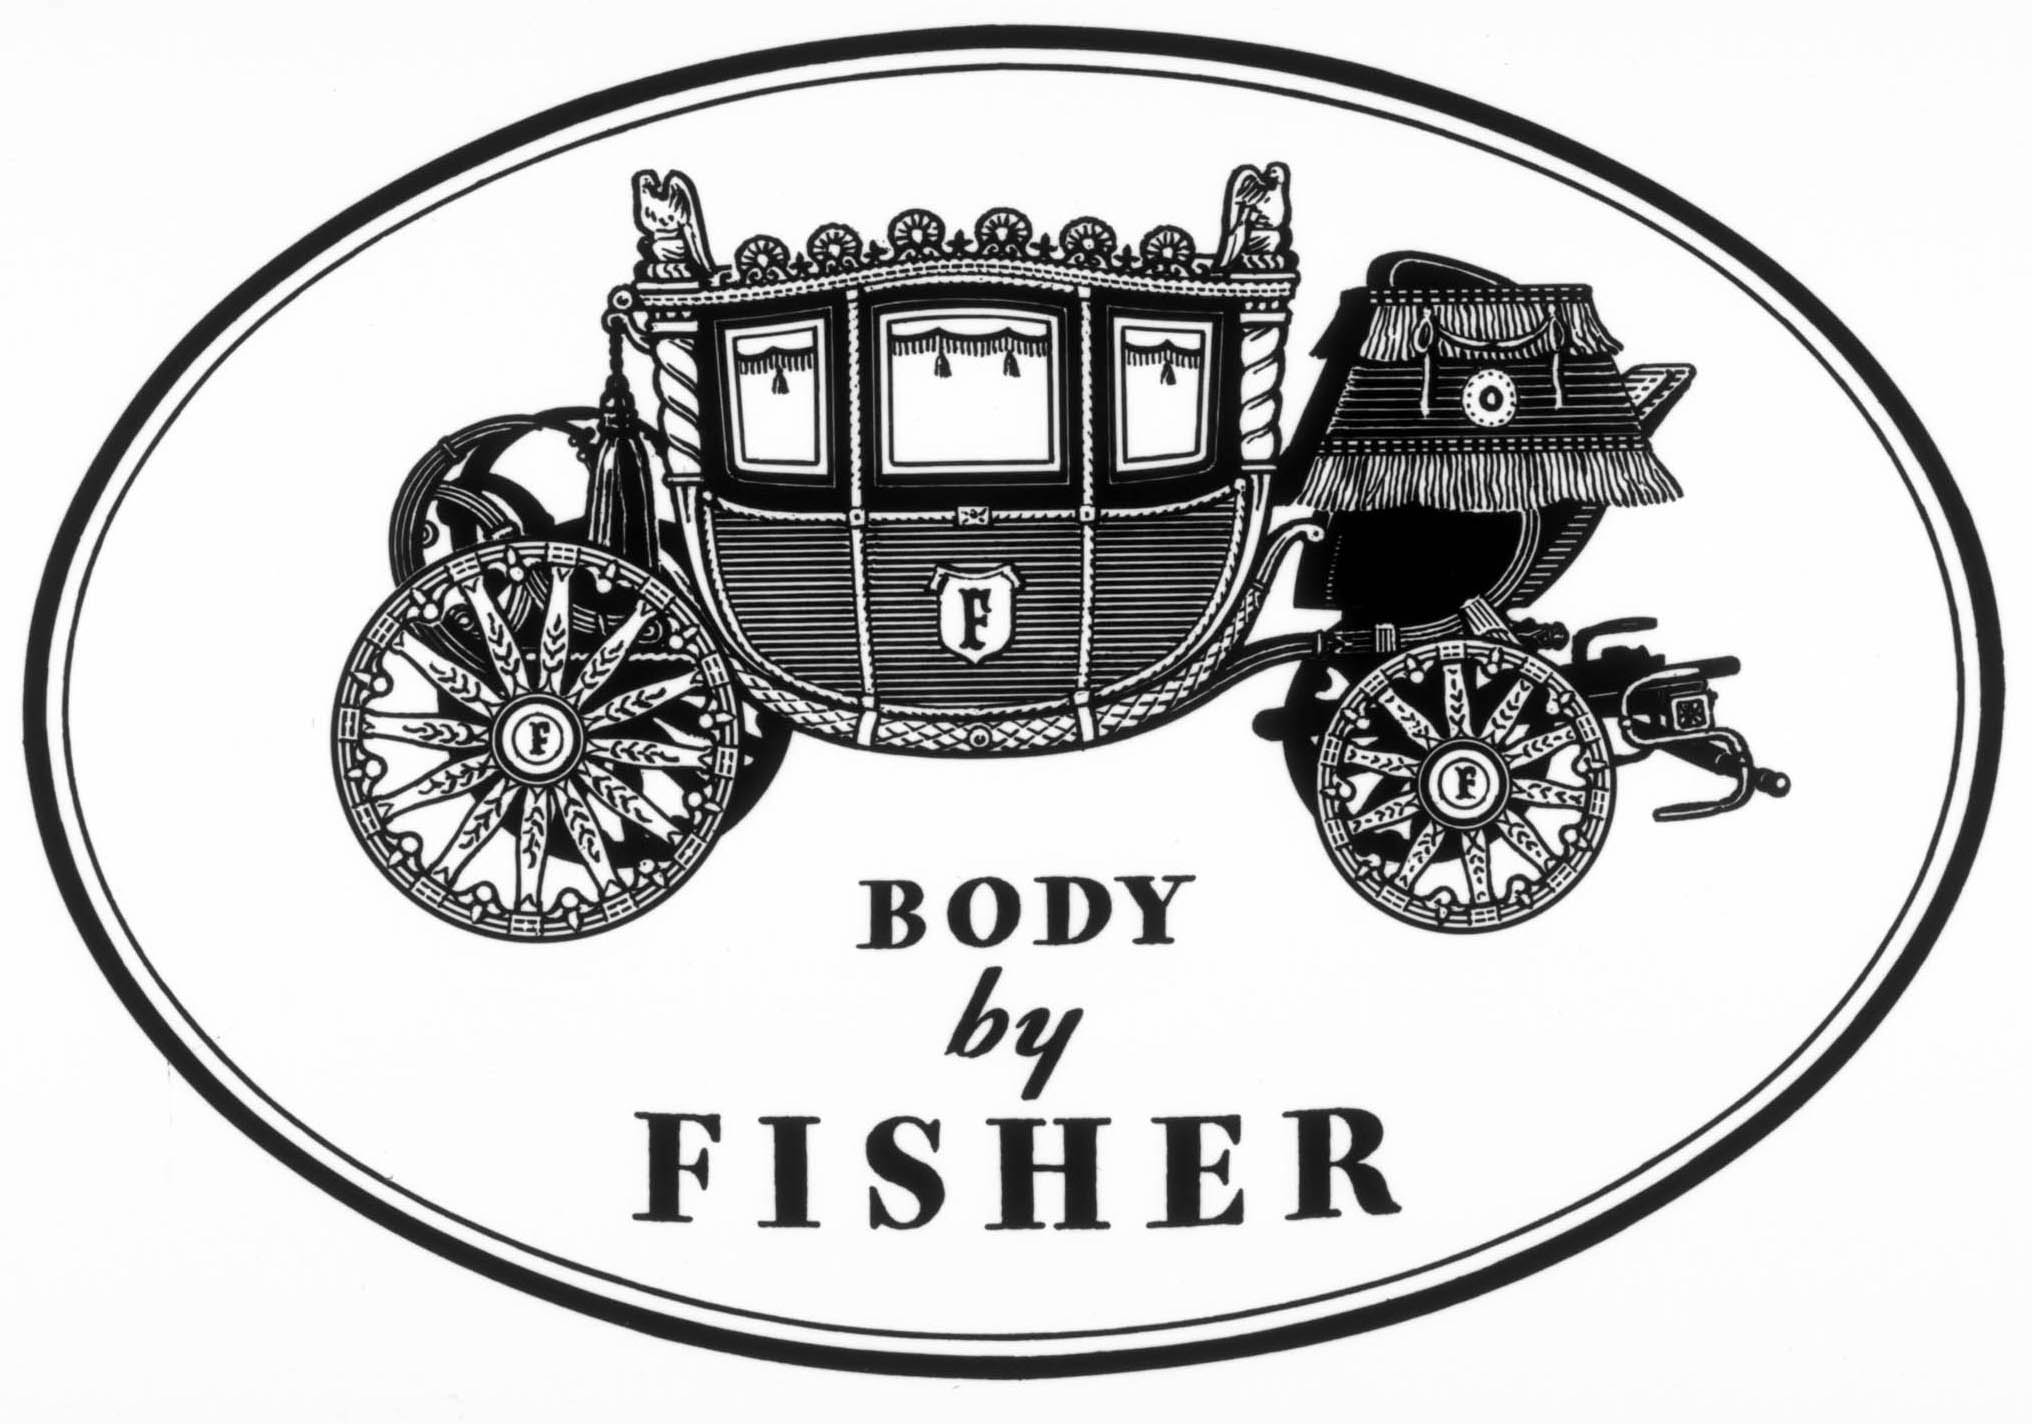 Body By Fisher Cartype 1955 Buick Electra 225 Convertible Logo 30s